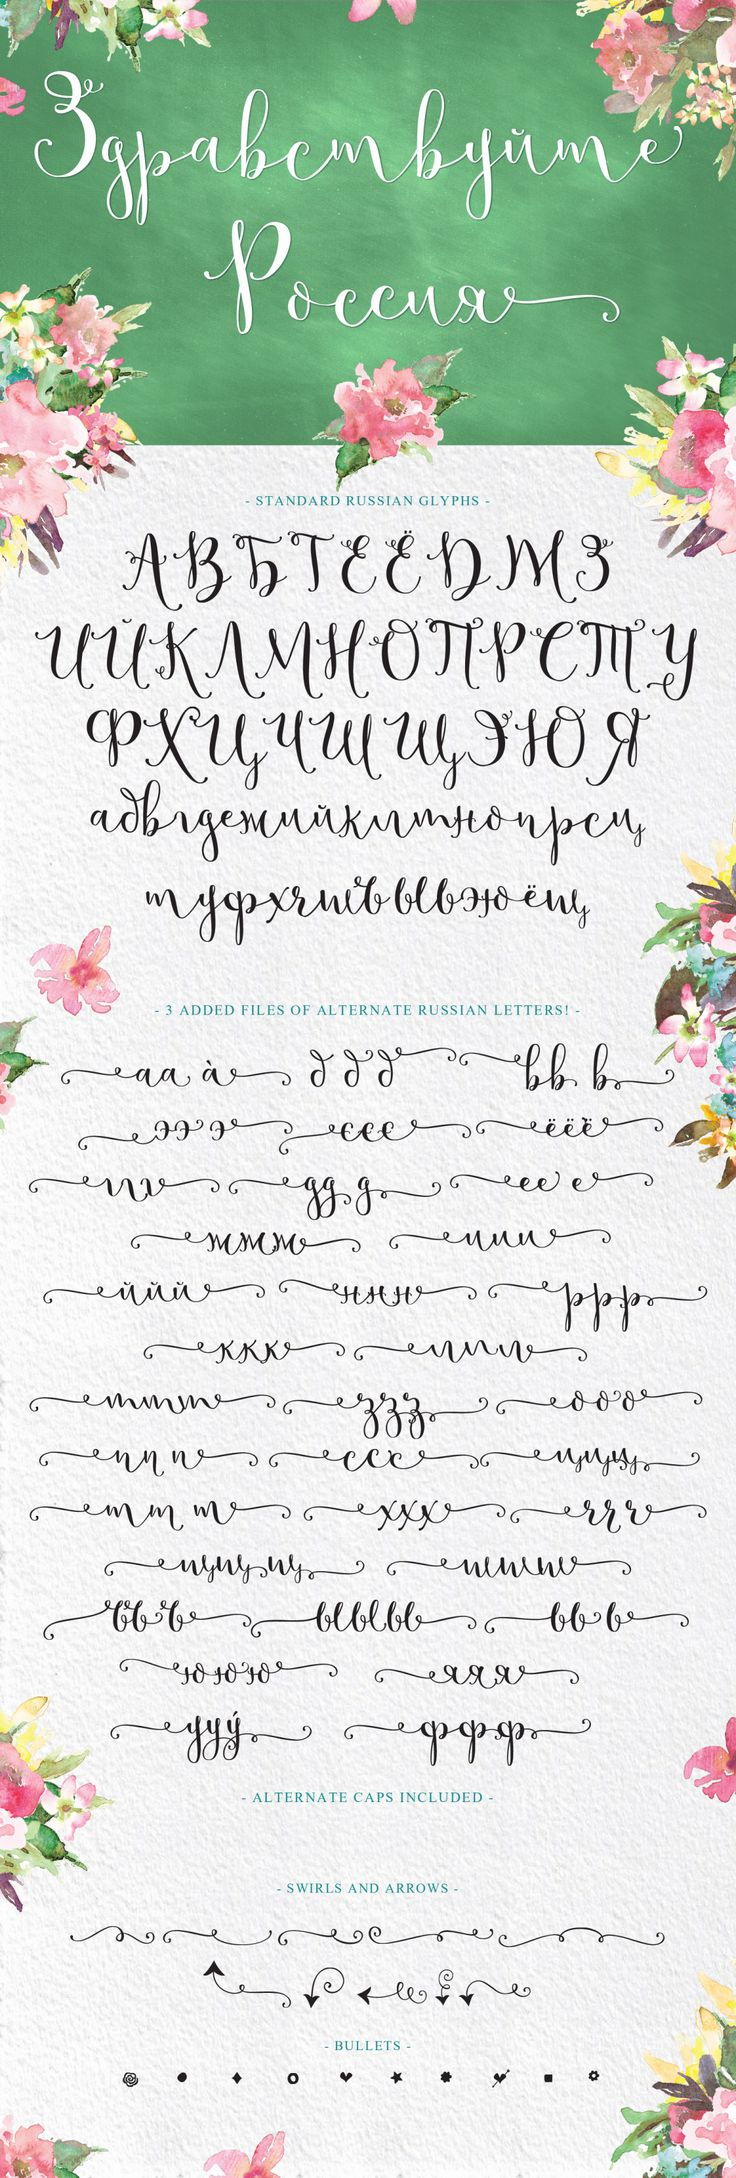 Butterfly Waltz Calligraphy Hand lettered Russian Cryllic Script Cursive Font Decorative Typeface